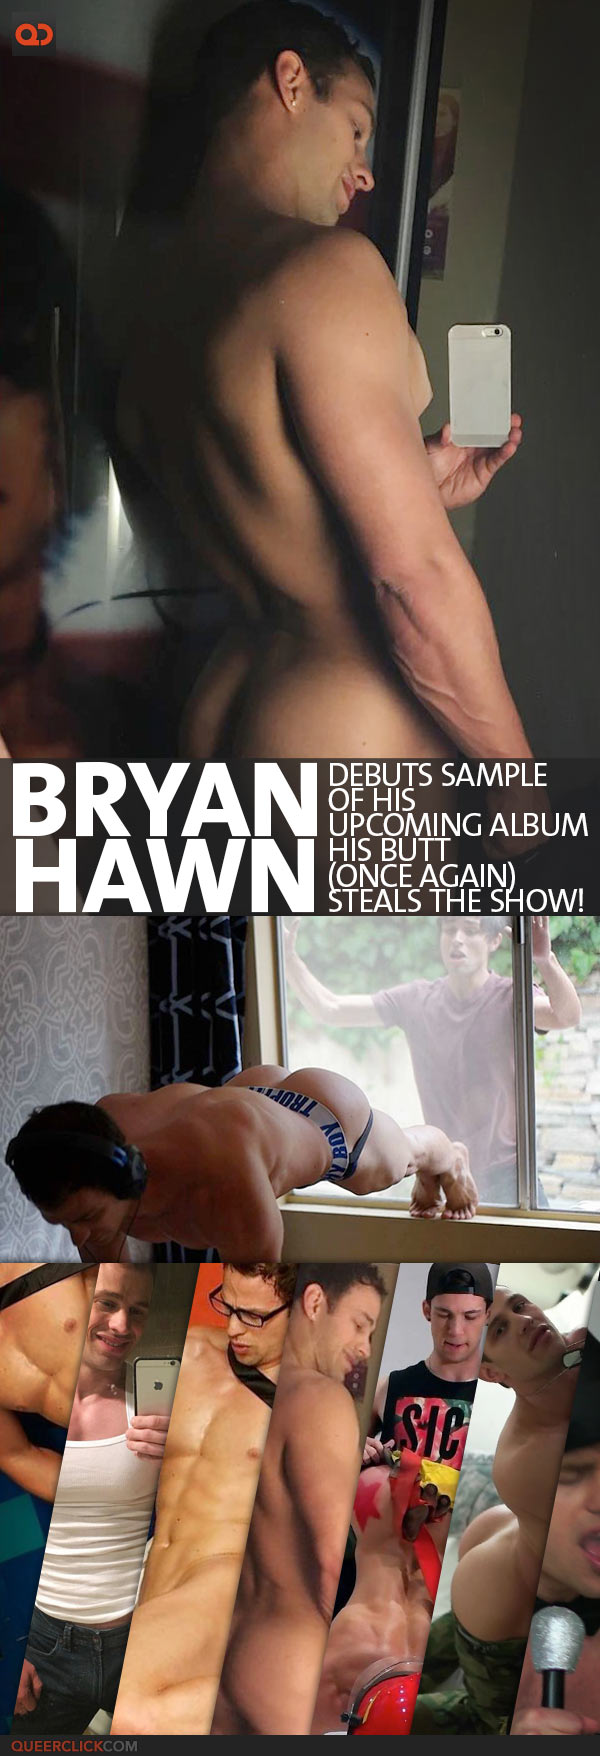 Bryan Hawn Debuts Sample Of His Upcoming Album - His Butt, Once Again, Steals The Show!